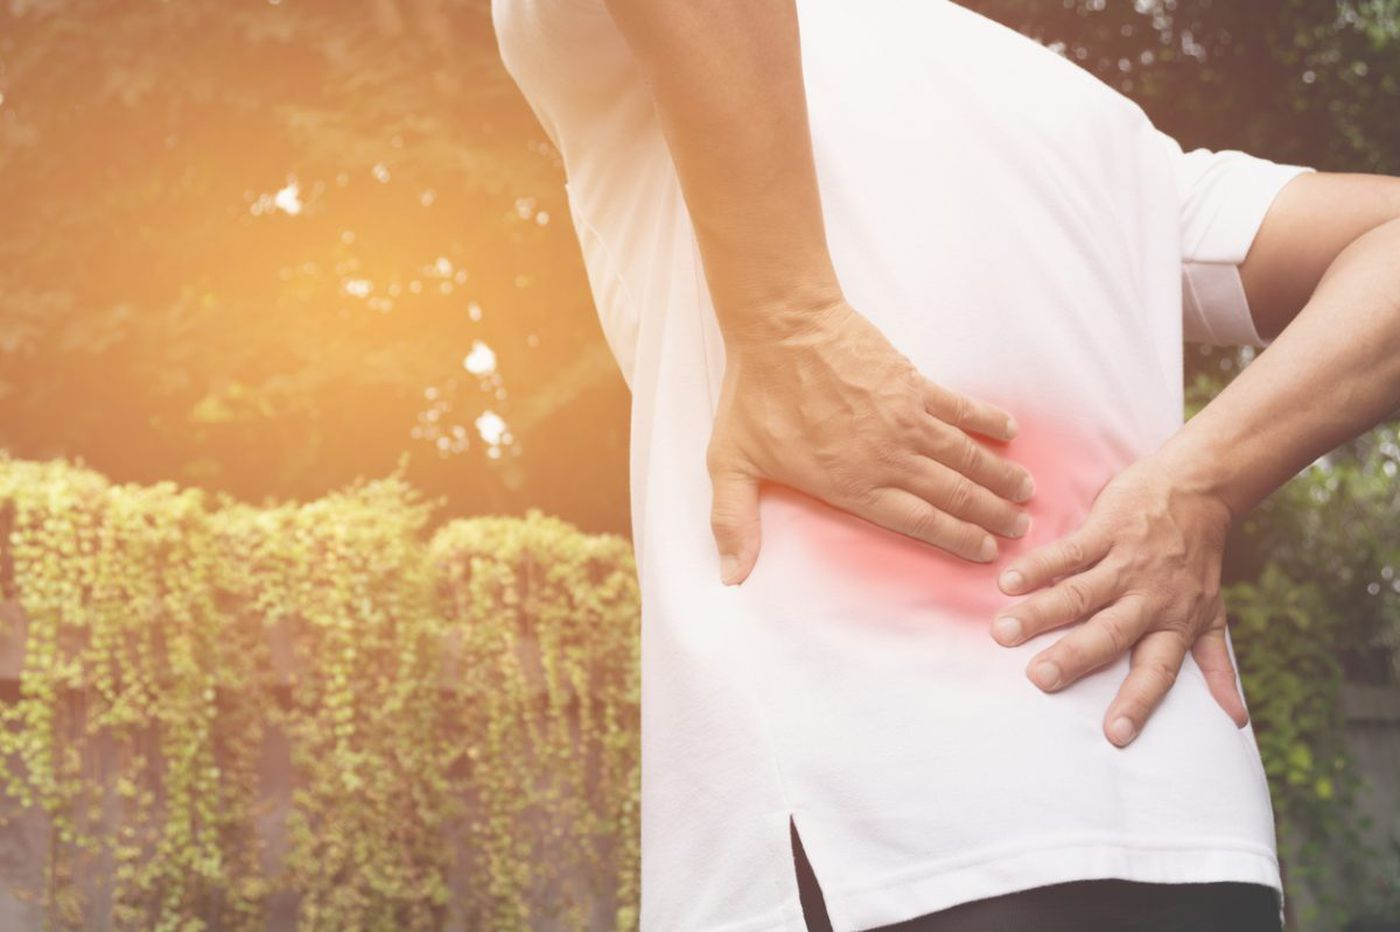 Medical mystery: Man's lower back pain resulted from unusual underlying cause